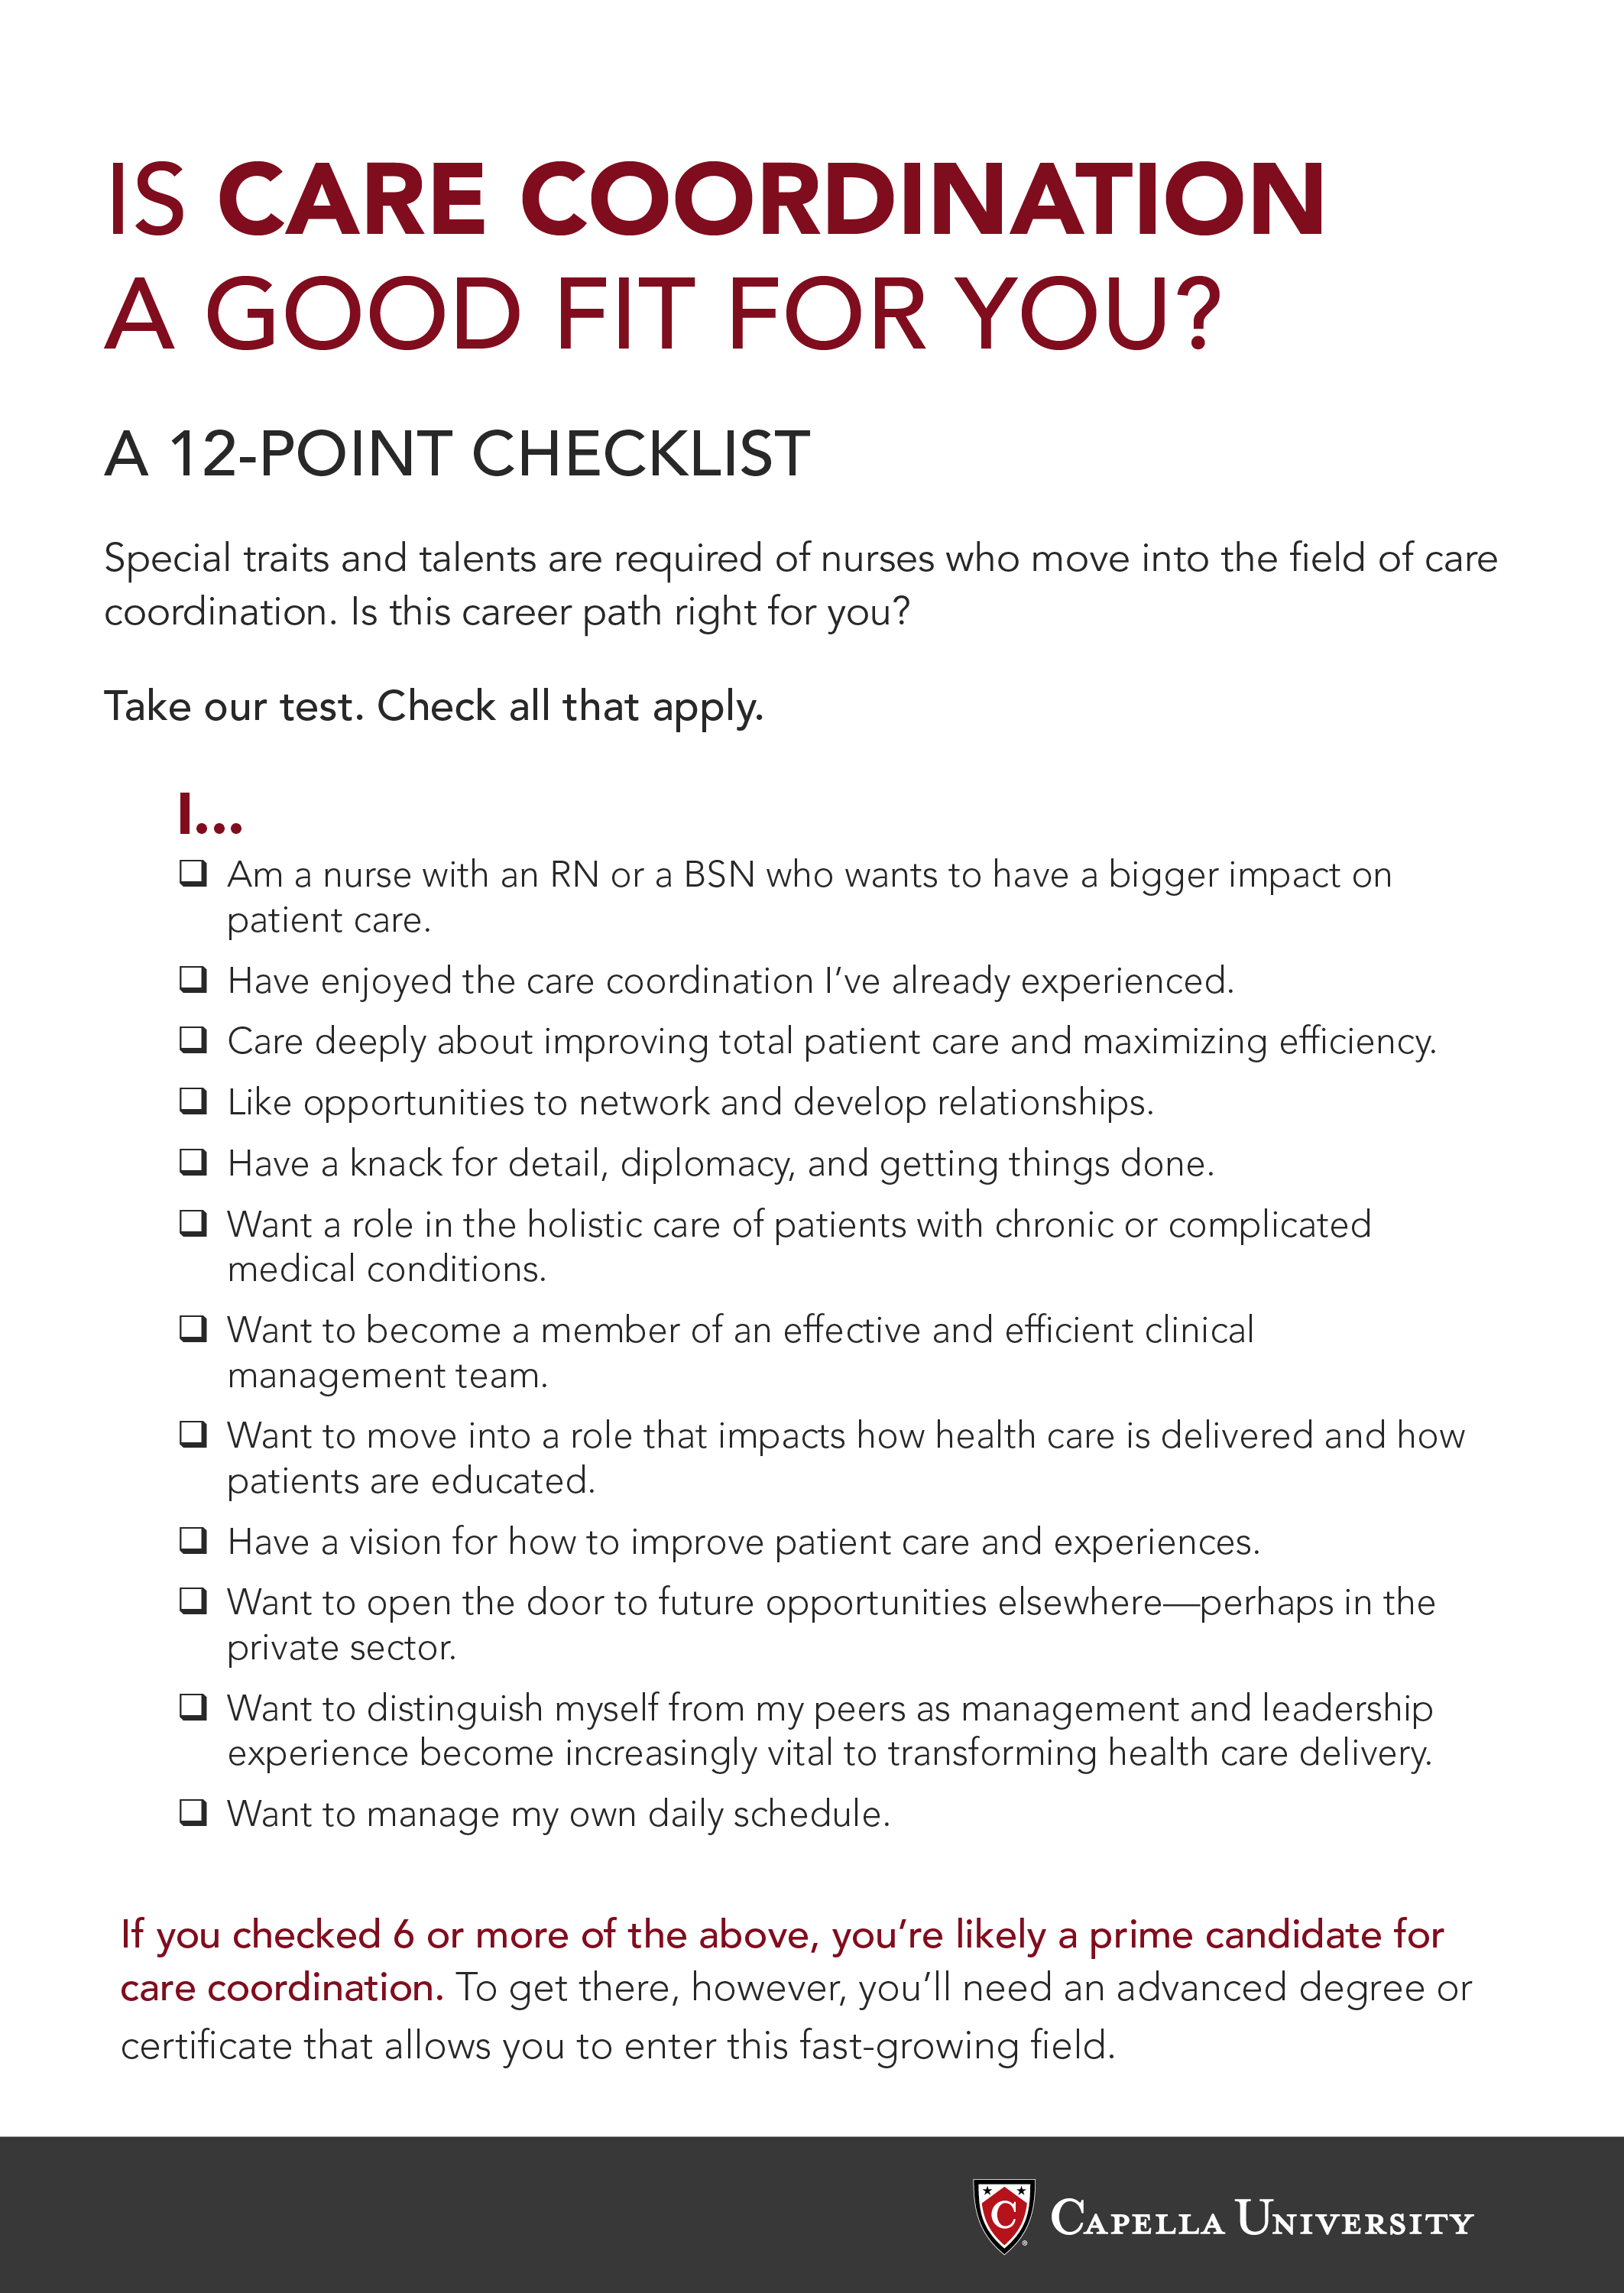 Care Coordination Checklist